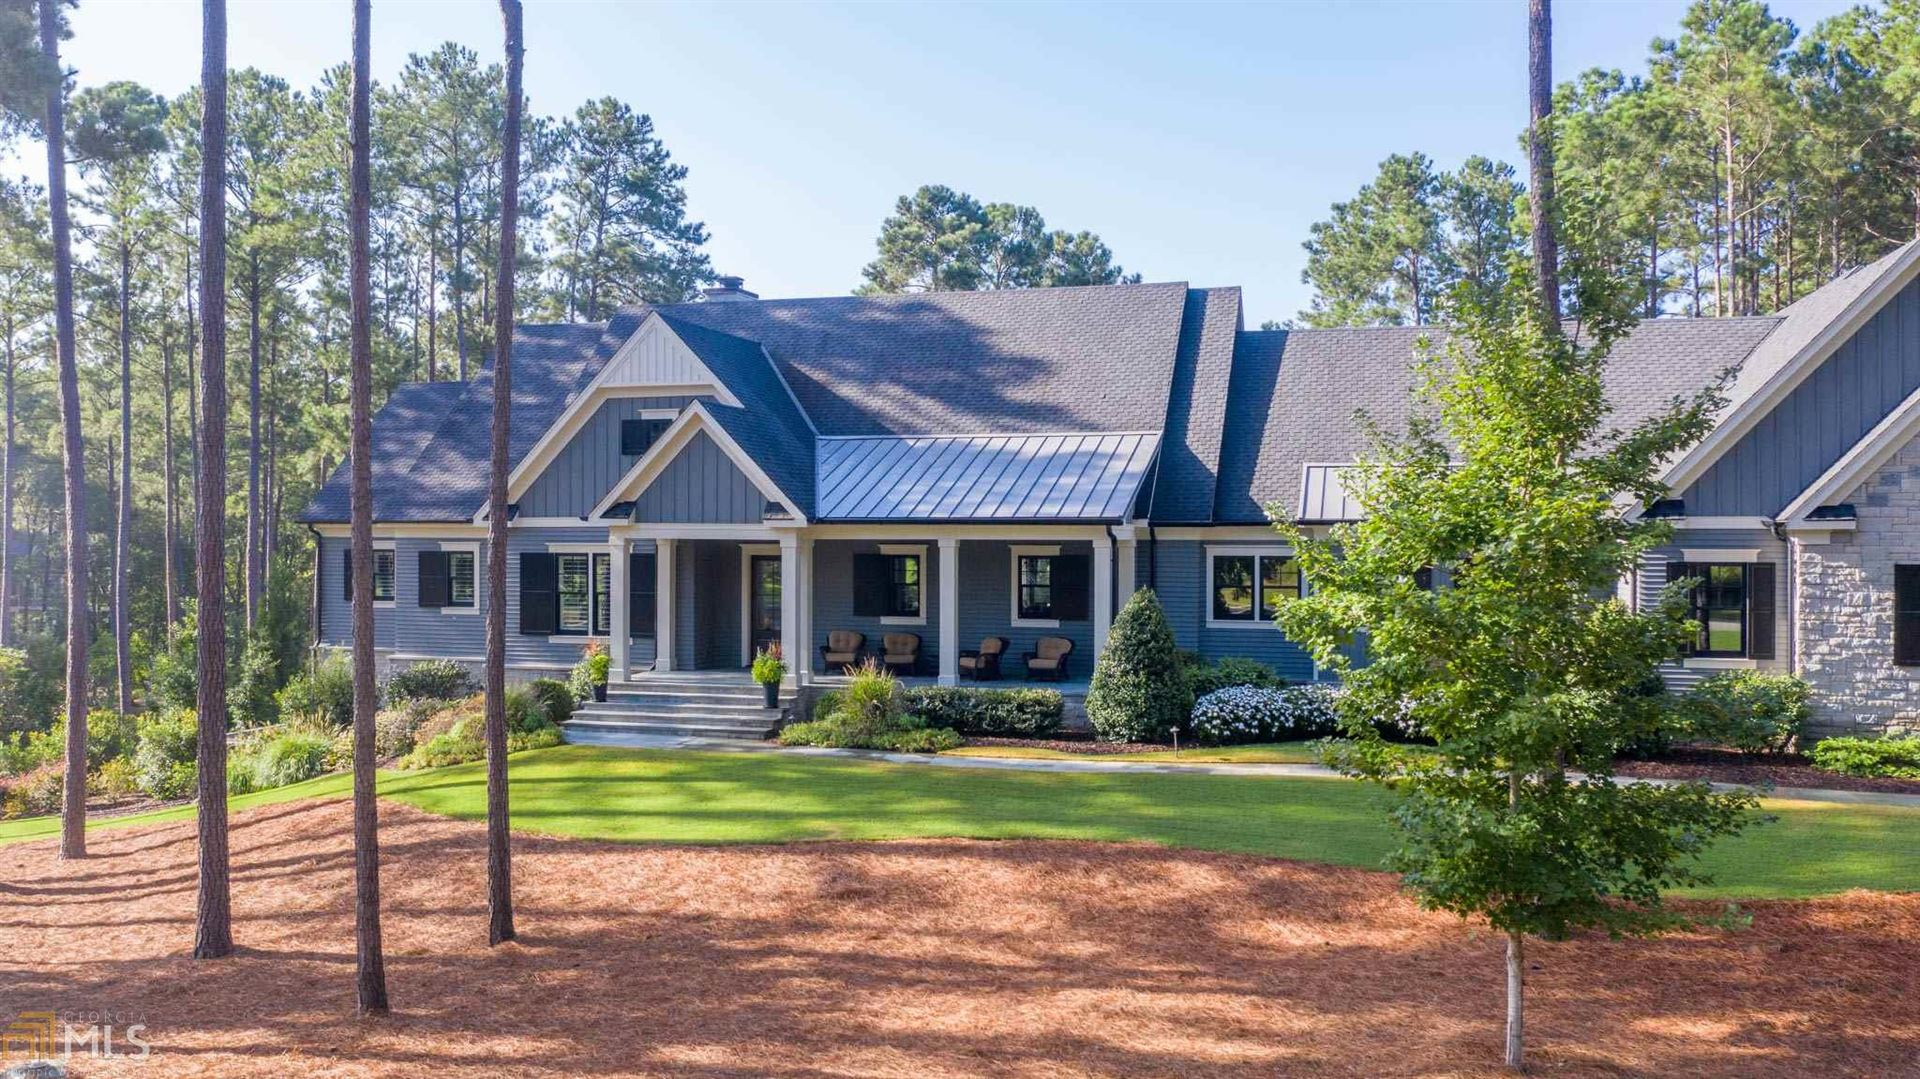 1051 Amasa Ln, Greensboro, GA 30642 - MLS#: 8874068